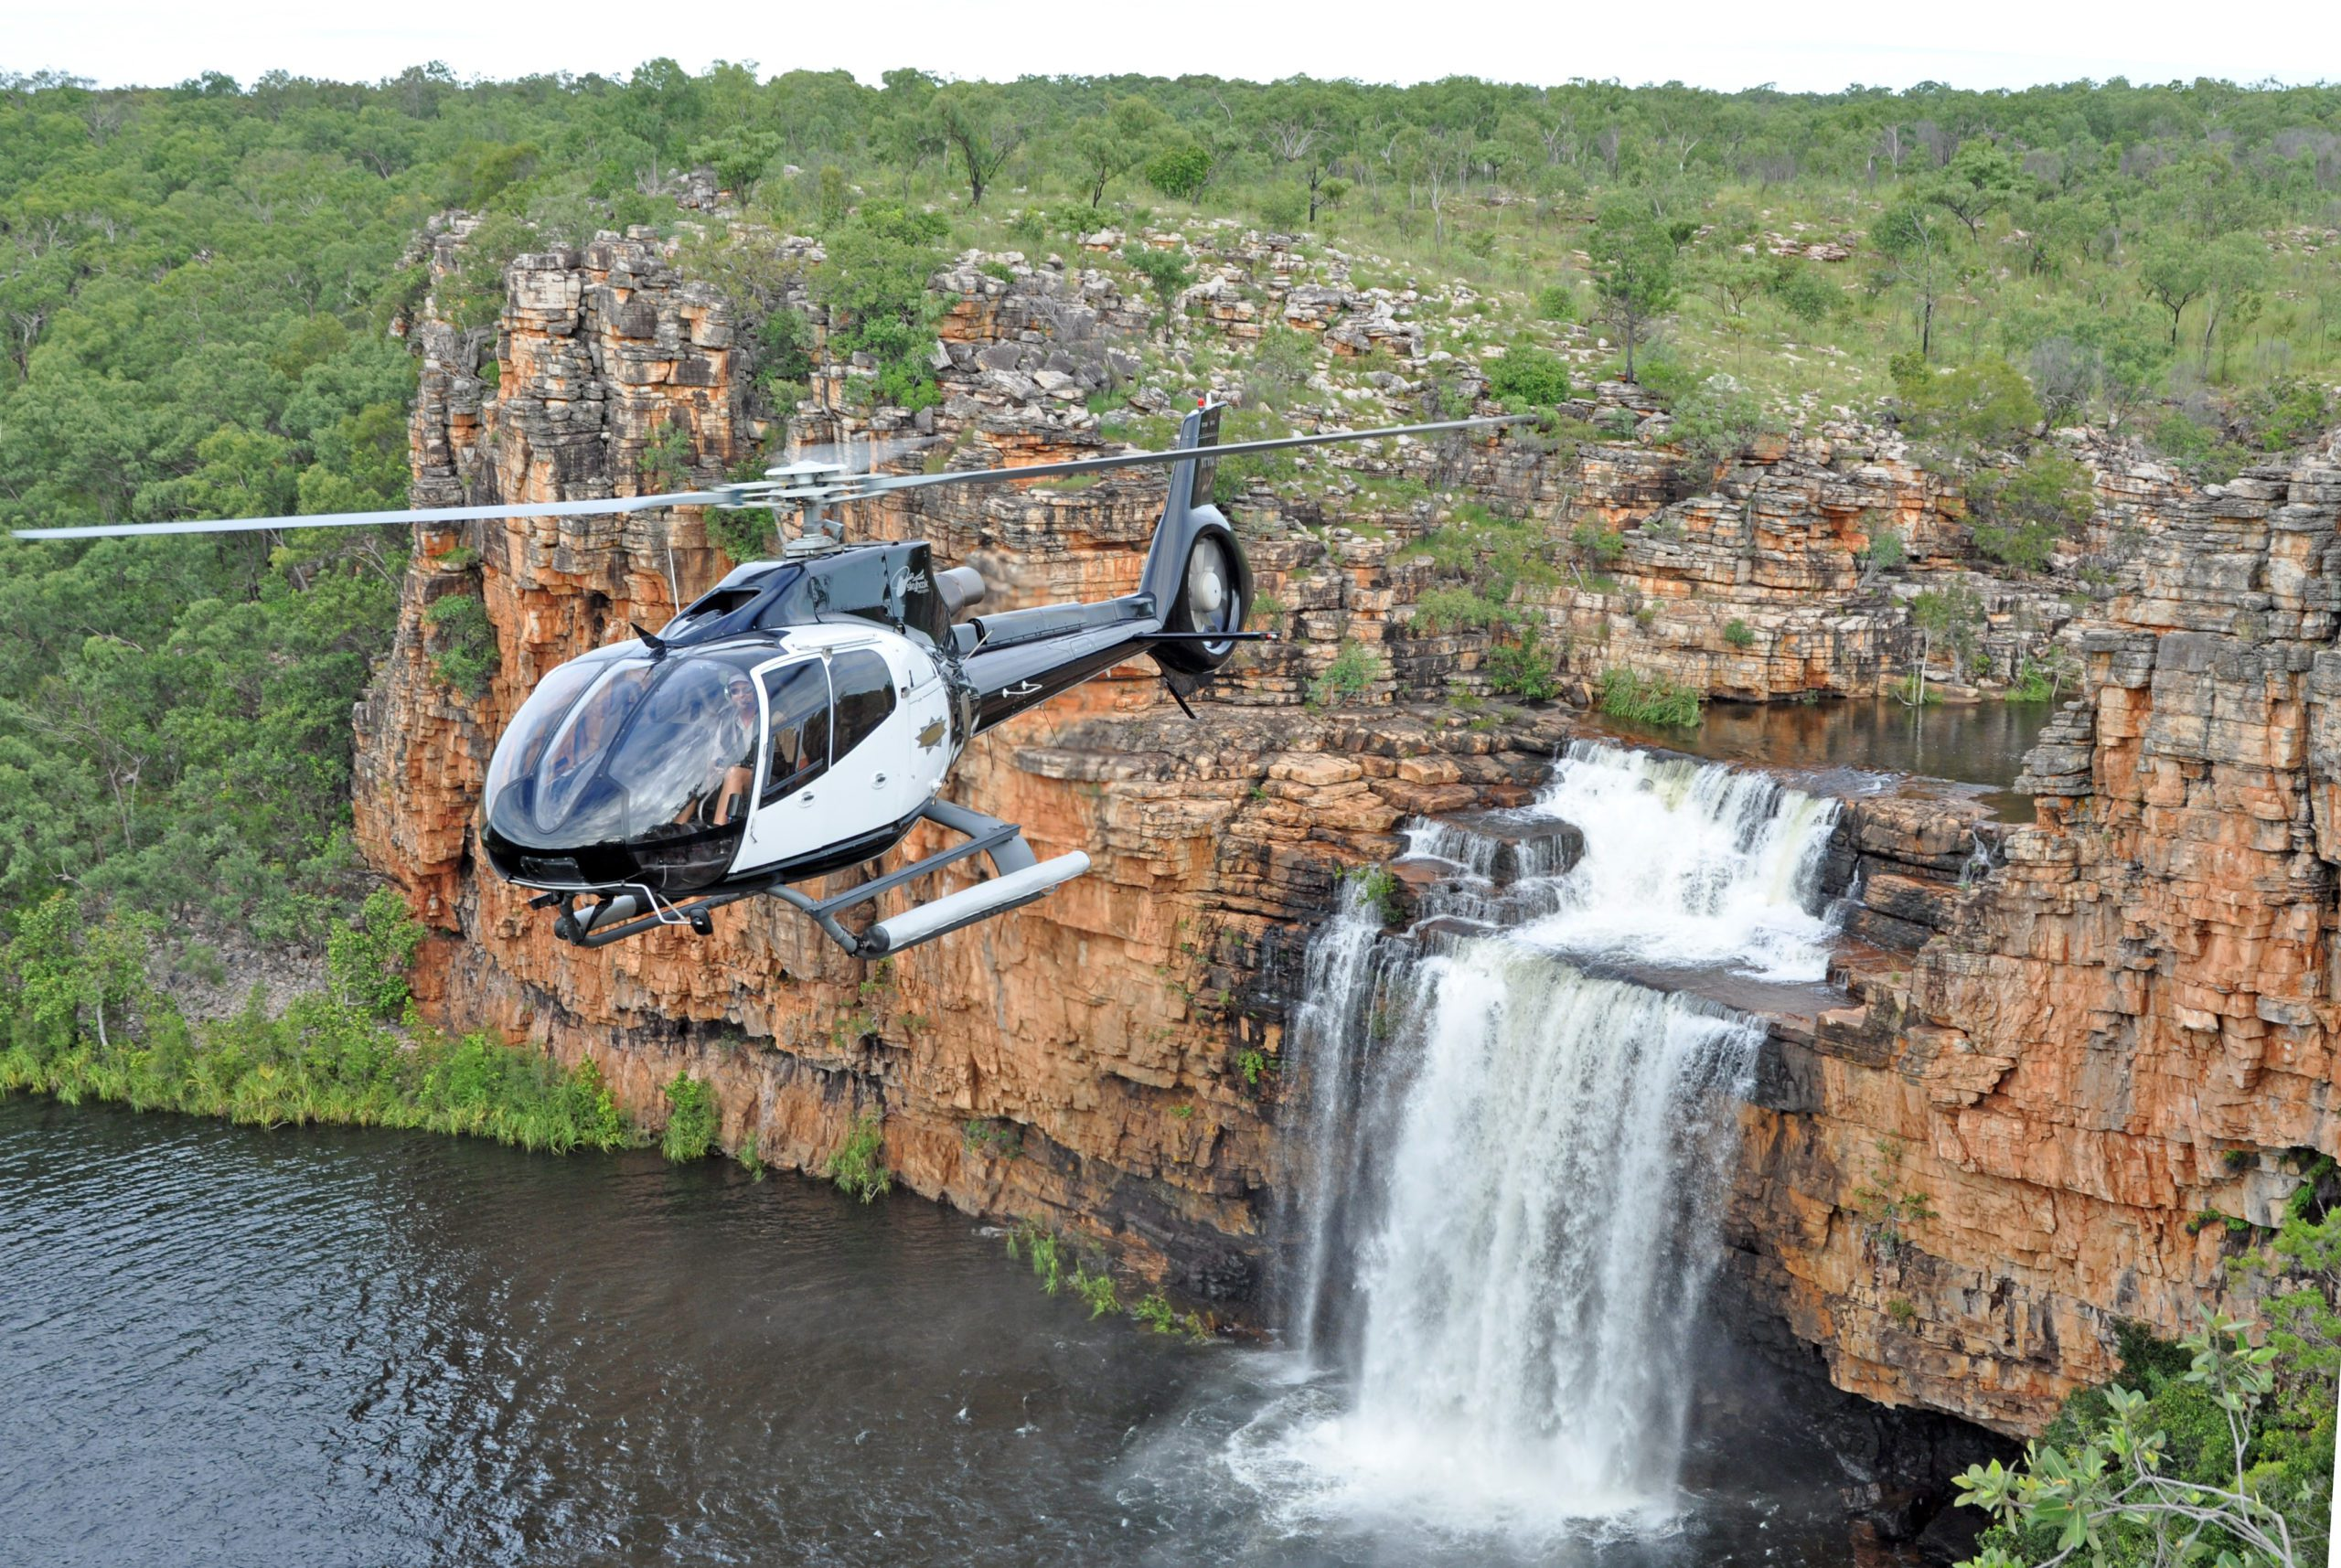 A helicopter flies above a waterfall in Kimberley